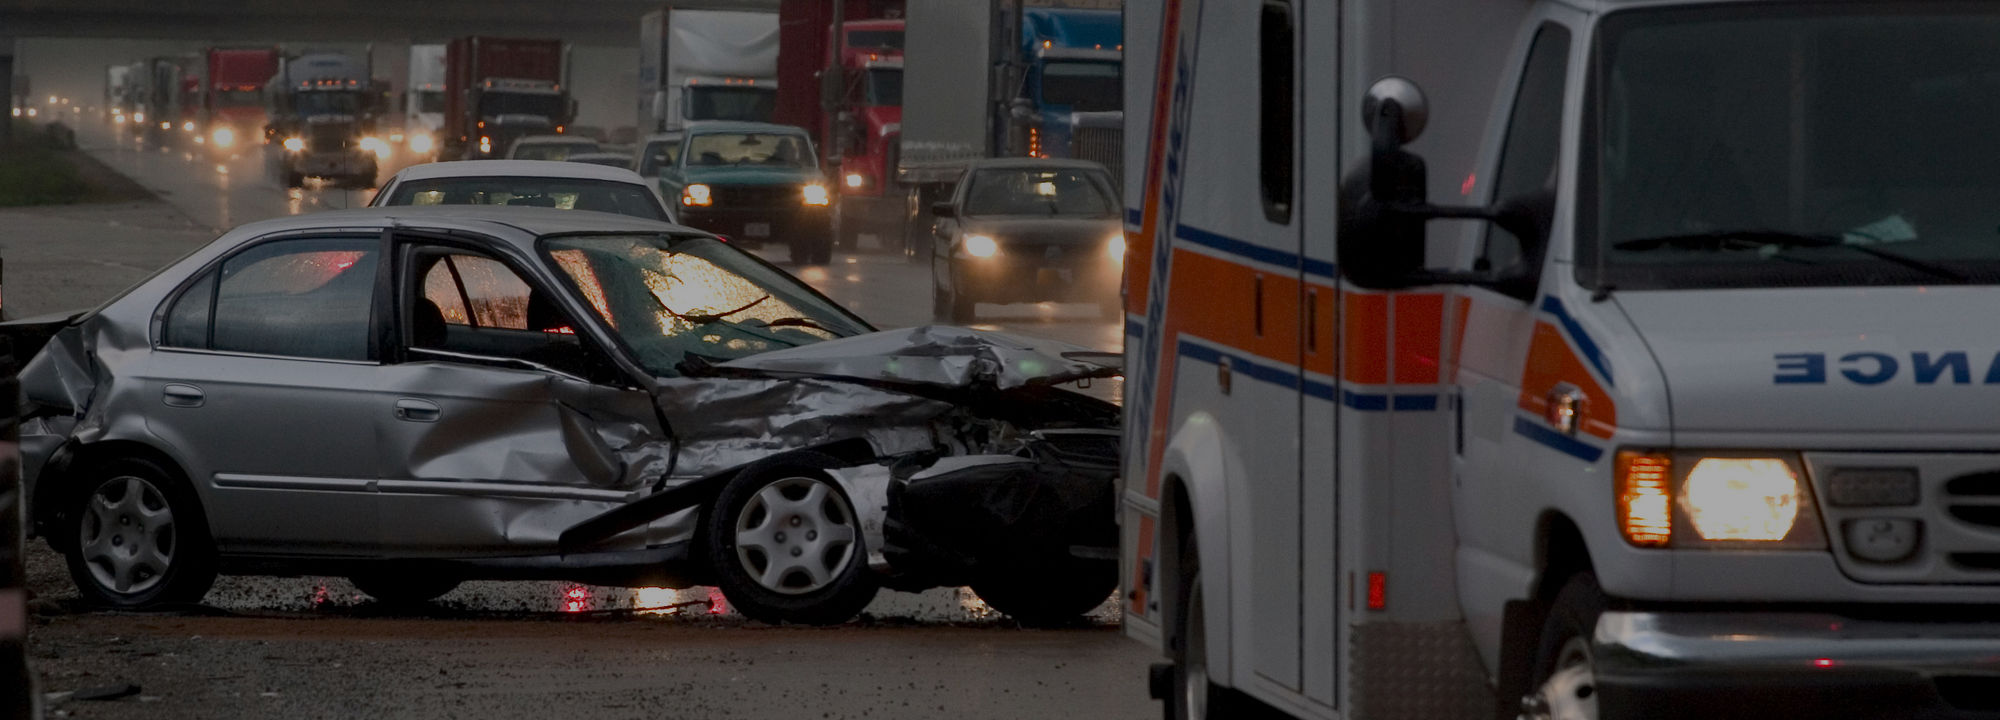 Drunk Driving Accident Lawyer in Colorado Springs